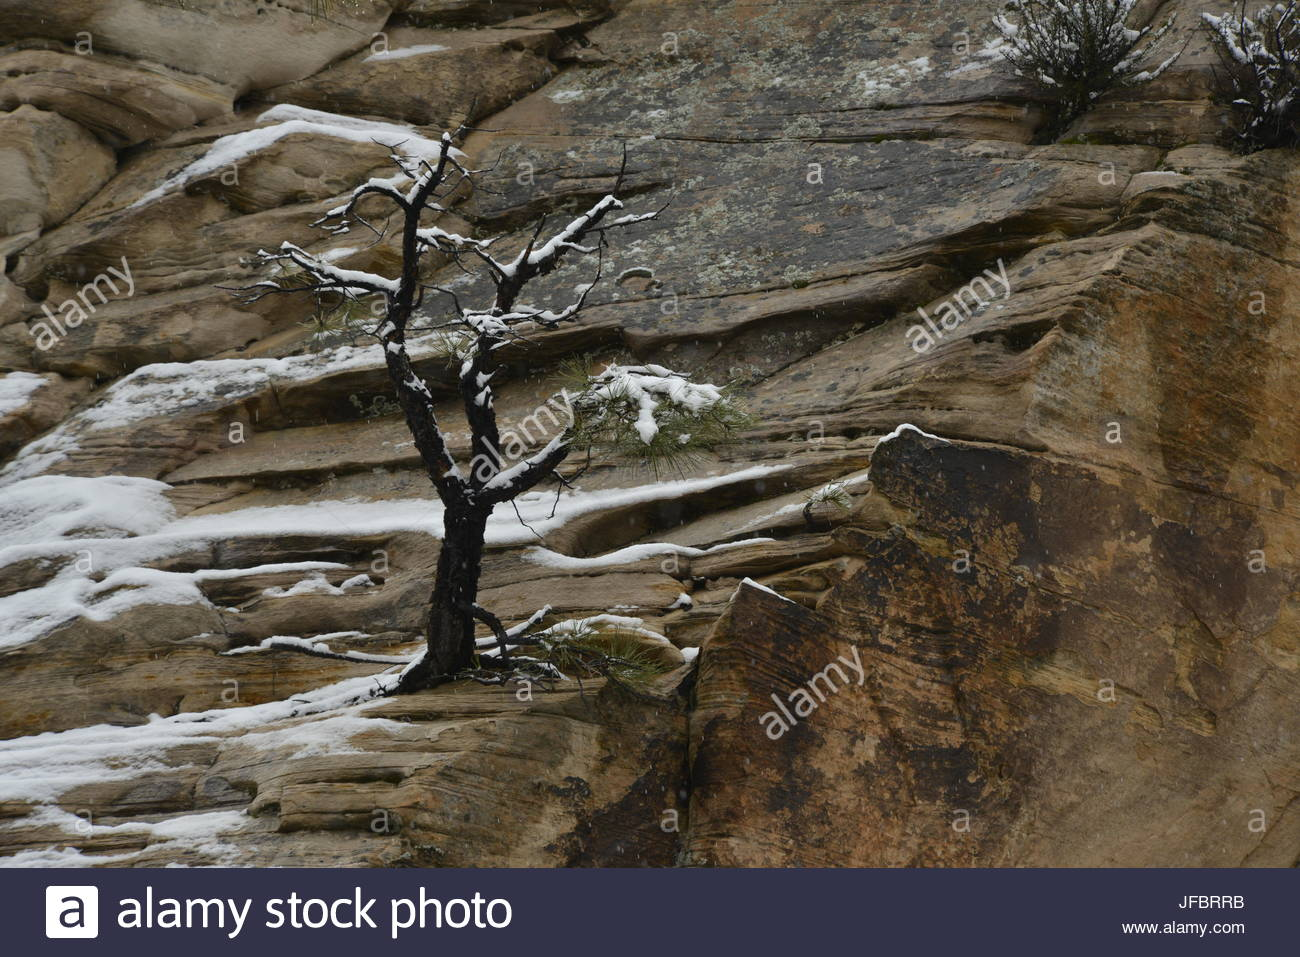 Snow in Zion National Park. - Stock Image